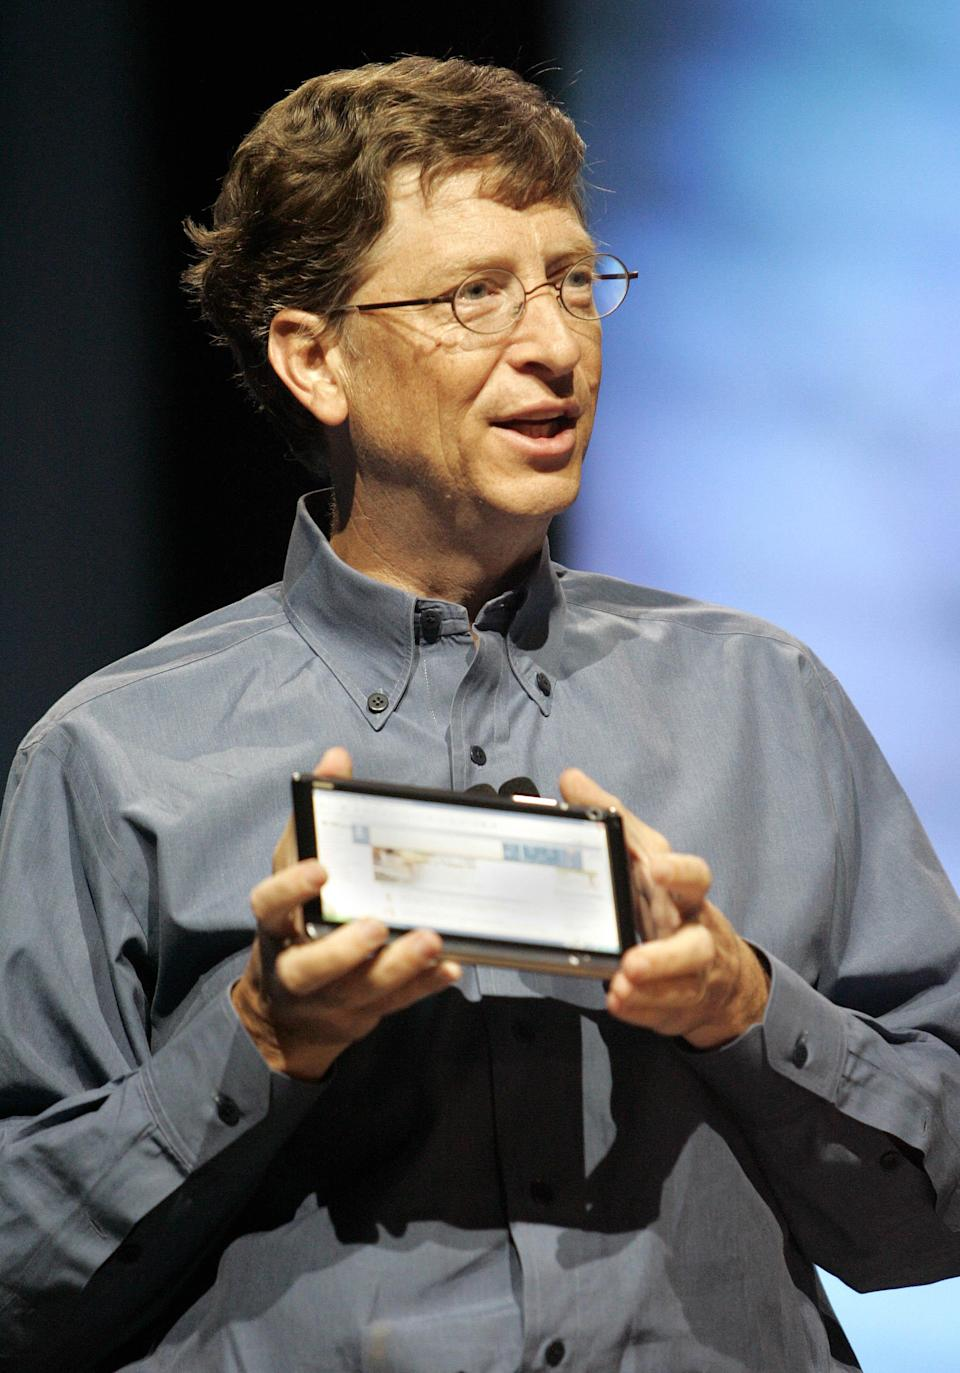 """FILE- In an April 25, 2005, file photo provided by Microsoft, then Microsoft Chairman and Chief Software Architect Bill Gates shares a prototype of an """"ultra-mobile"""" Tablet PC during a keynote speech for attendees at the Microsoft Windows Hardware Engineering Conference in Seattle. For decades, the tablet computer was like a mirage in the technology industry: a great idea, seemingly reachable on the horizon, that disappointed as hopeful companies got closer."""" (AP Photo/Microsoft, Robert Sorbo, File)"""